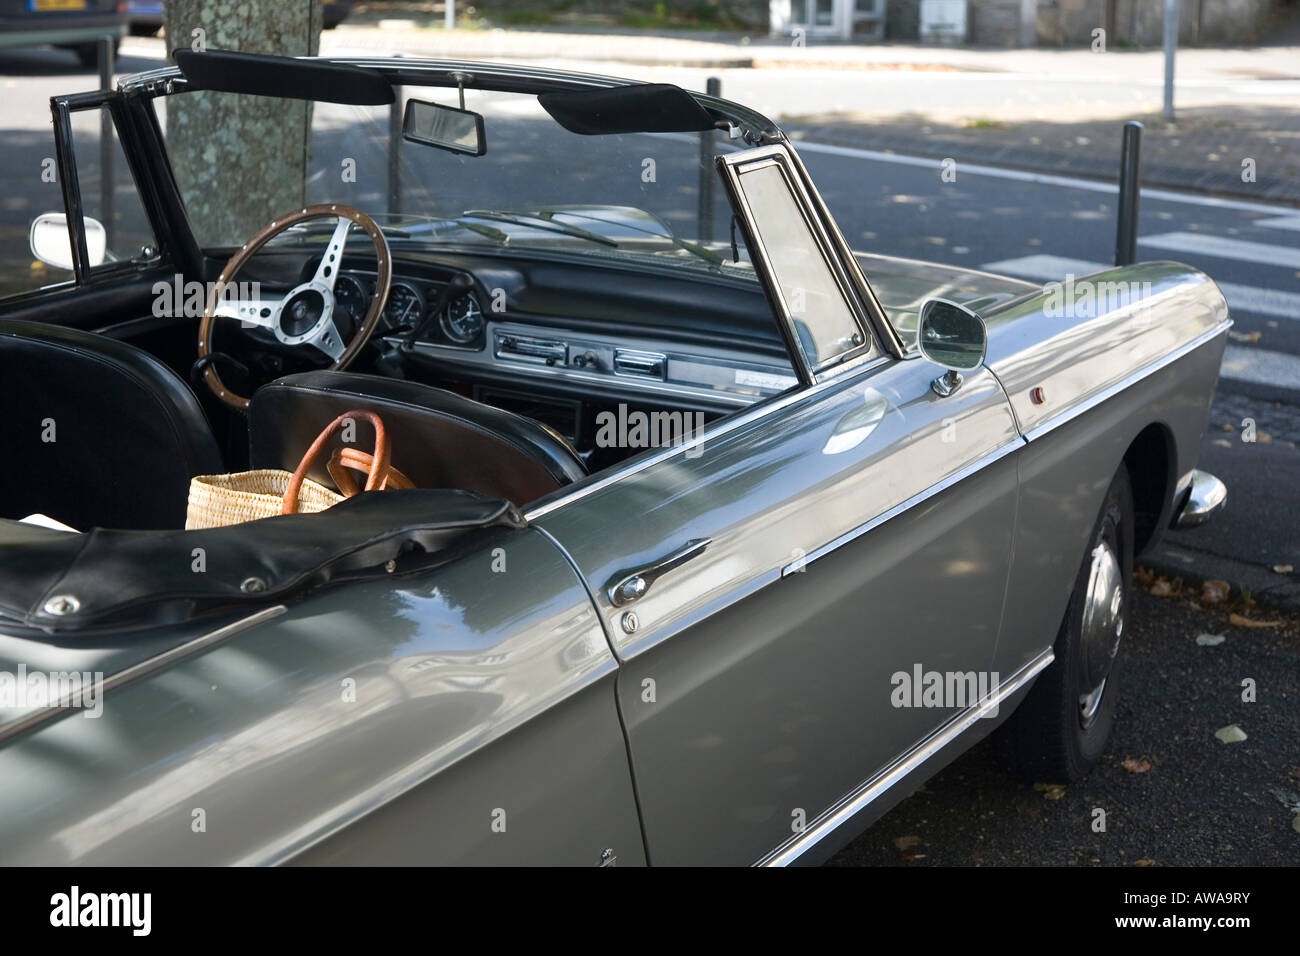 Old Peugeot convertible car parked in French street Stock Photo ...